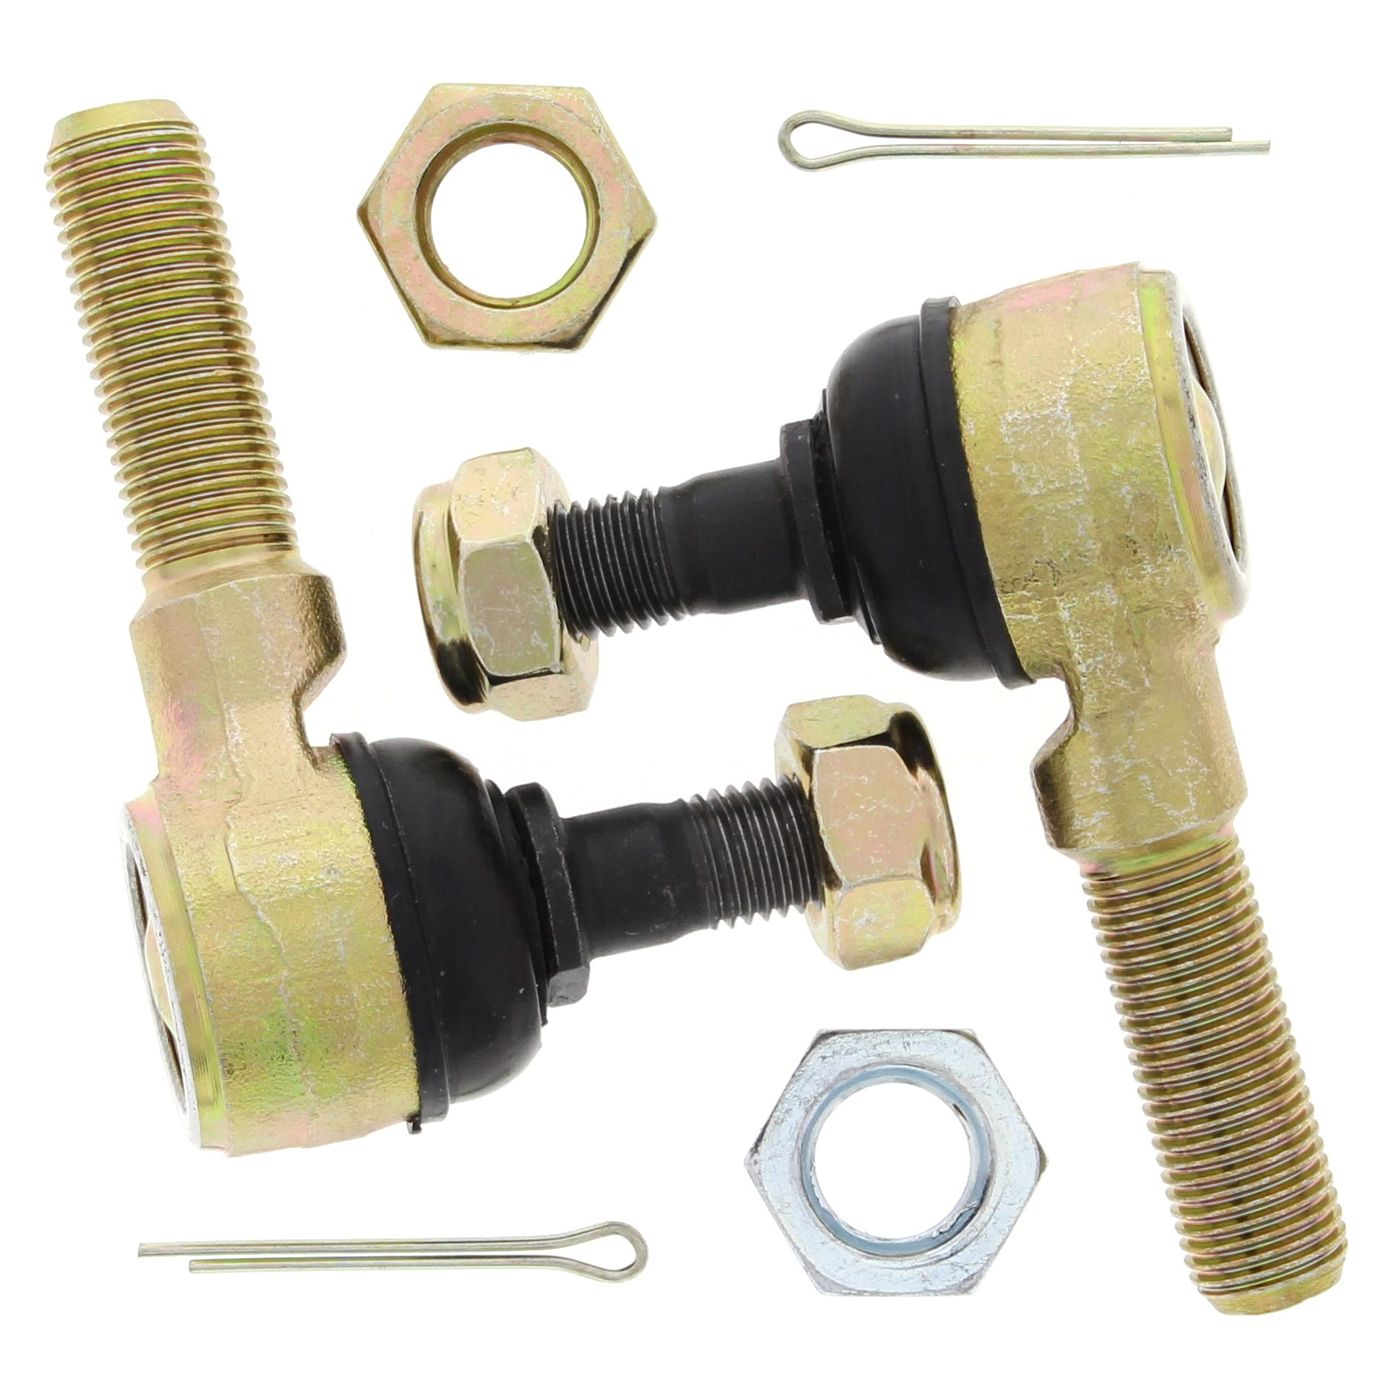 Wrp Tie Rod Ends - WRP511017 image